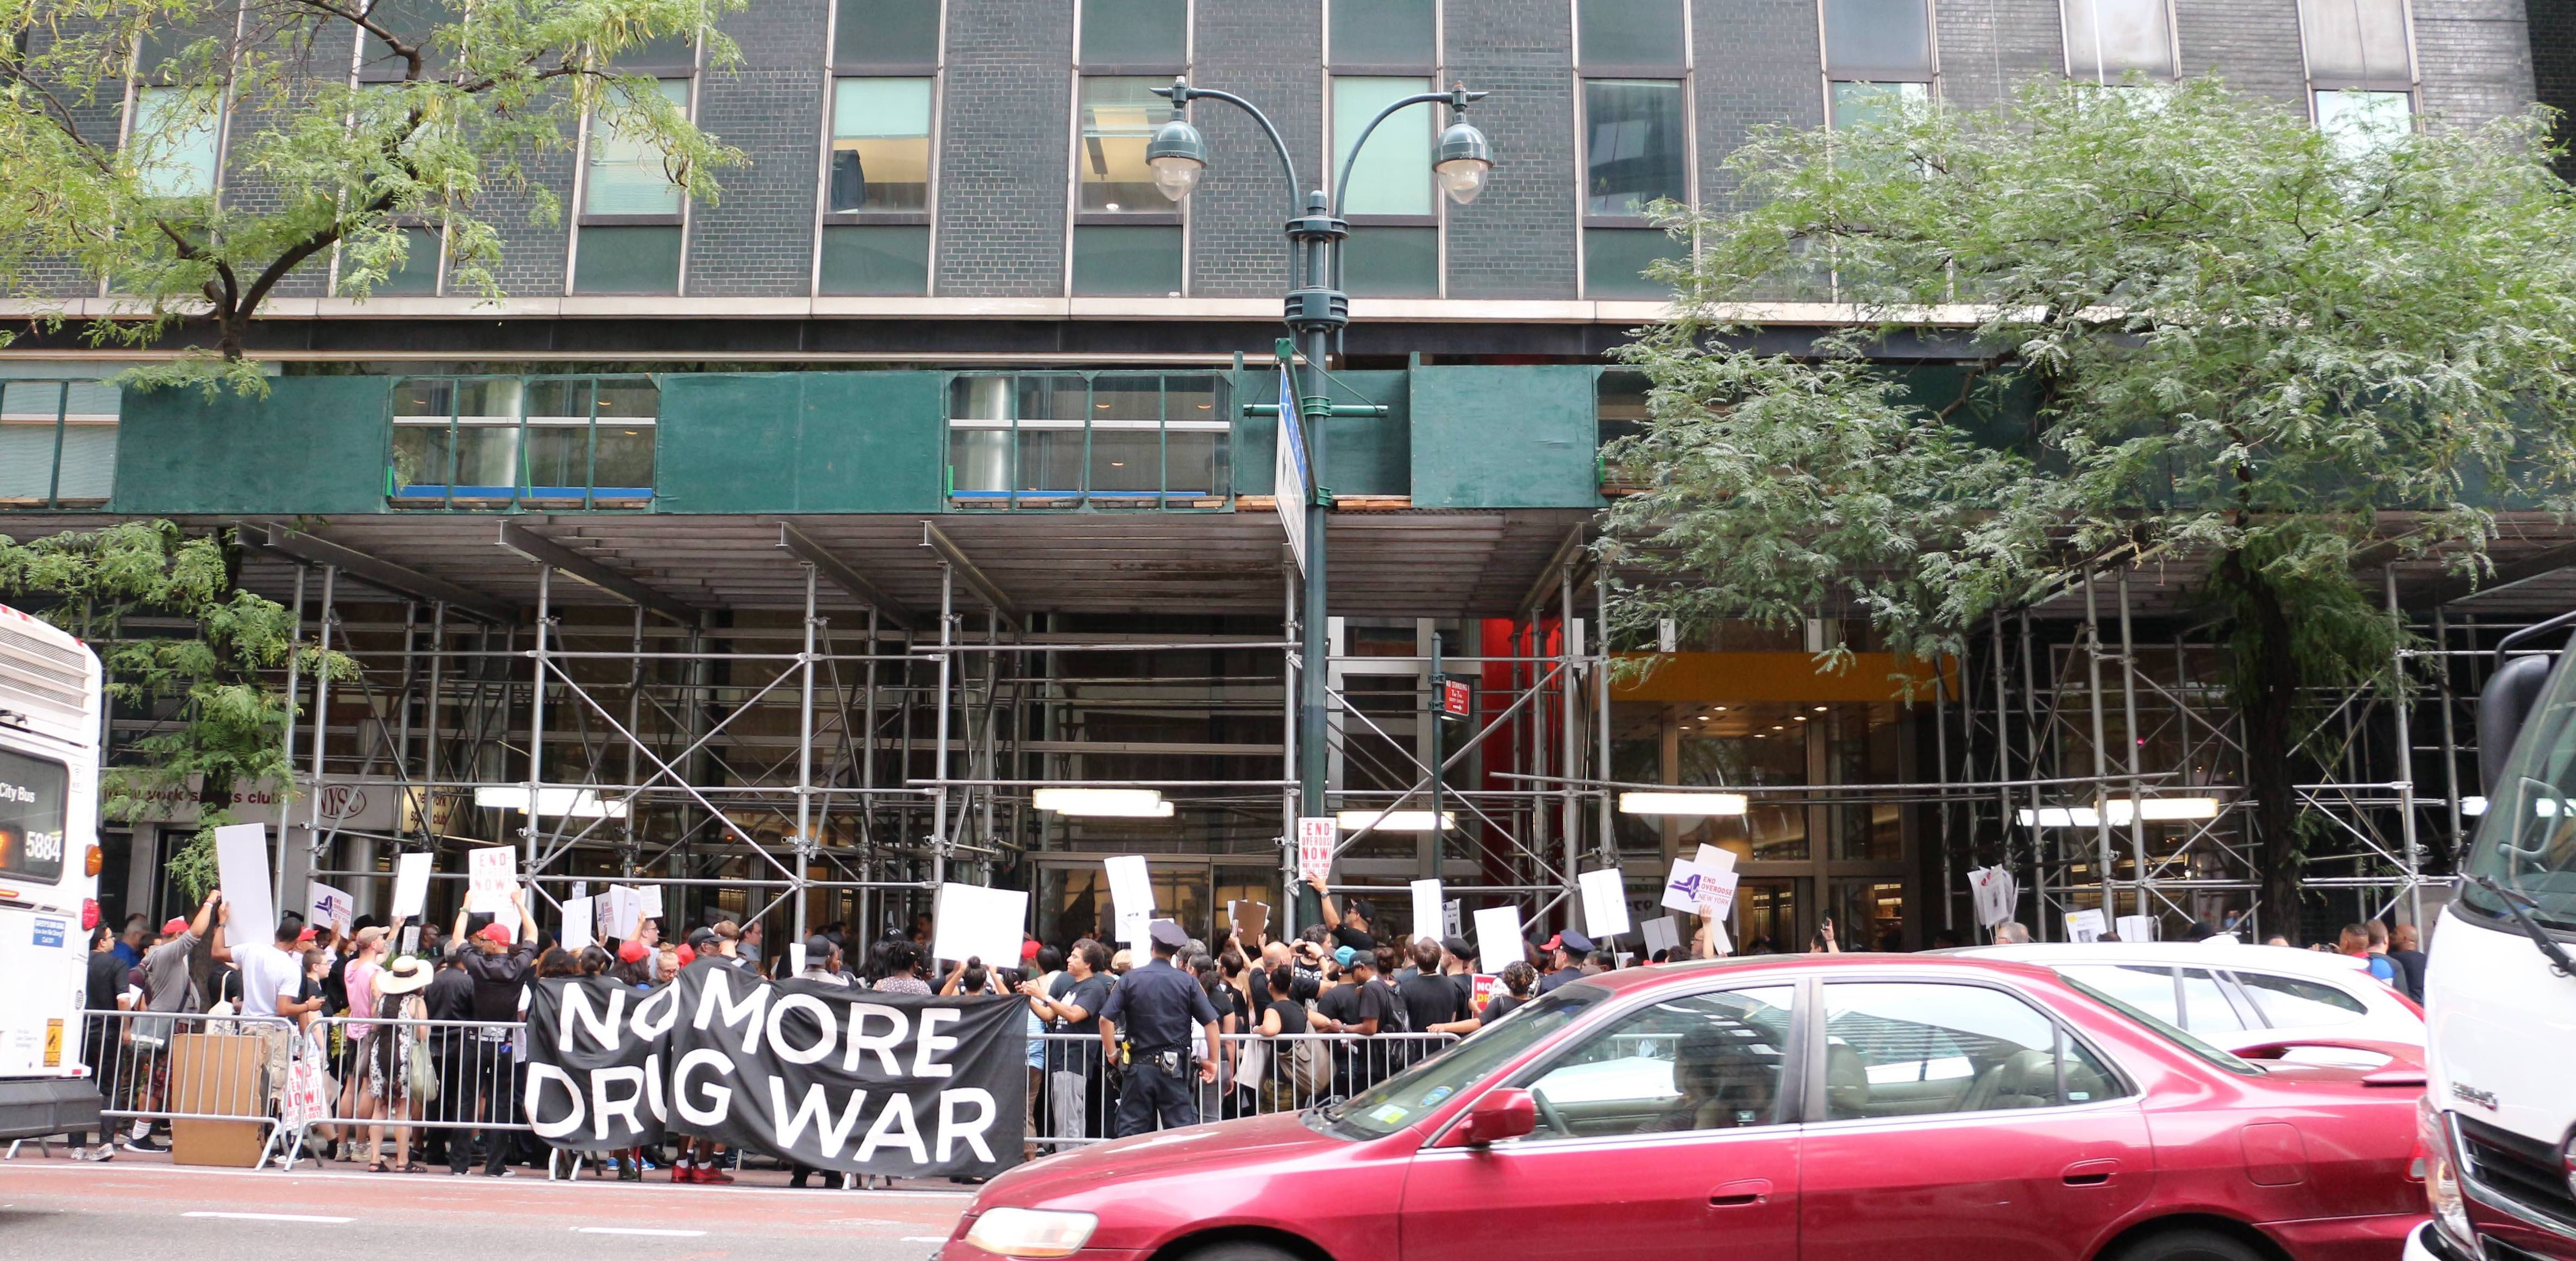 A group of protestors hold a banner outside a building. The banner reads 'NO MORE DRUG WAR'.